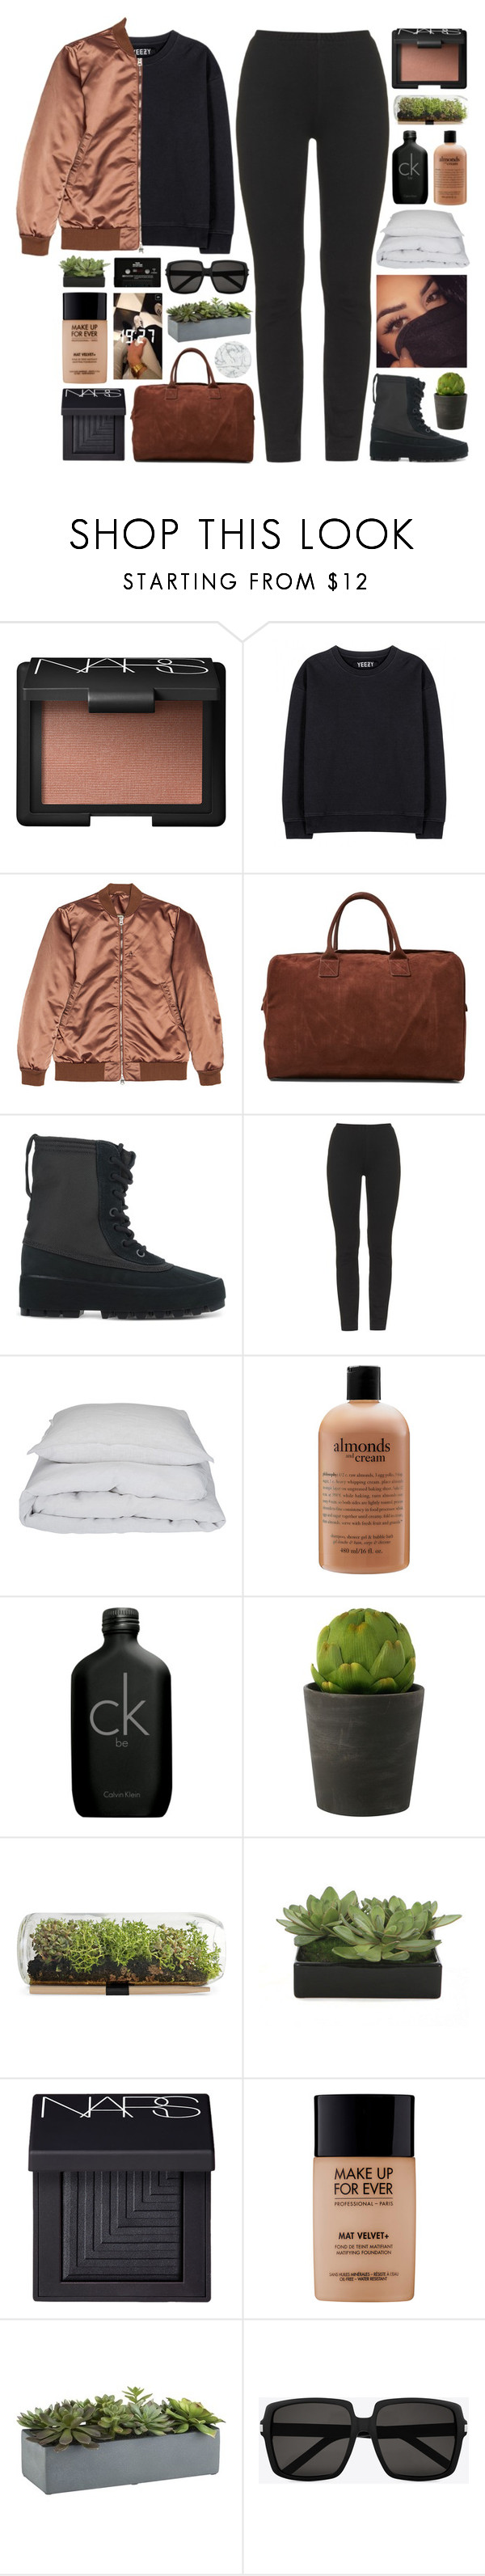 """""""your love is fading."""" by annamari-a ❤ liked on Polyvore featuring NARS Cosmetics, adidas Originals, Acne Studios, adidas, By Nord, philosophy, Calvin Klein, Linea, Lux-Art Silks and MAKE UP FOR EVER"""